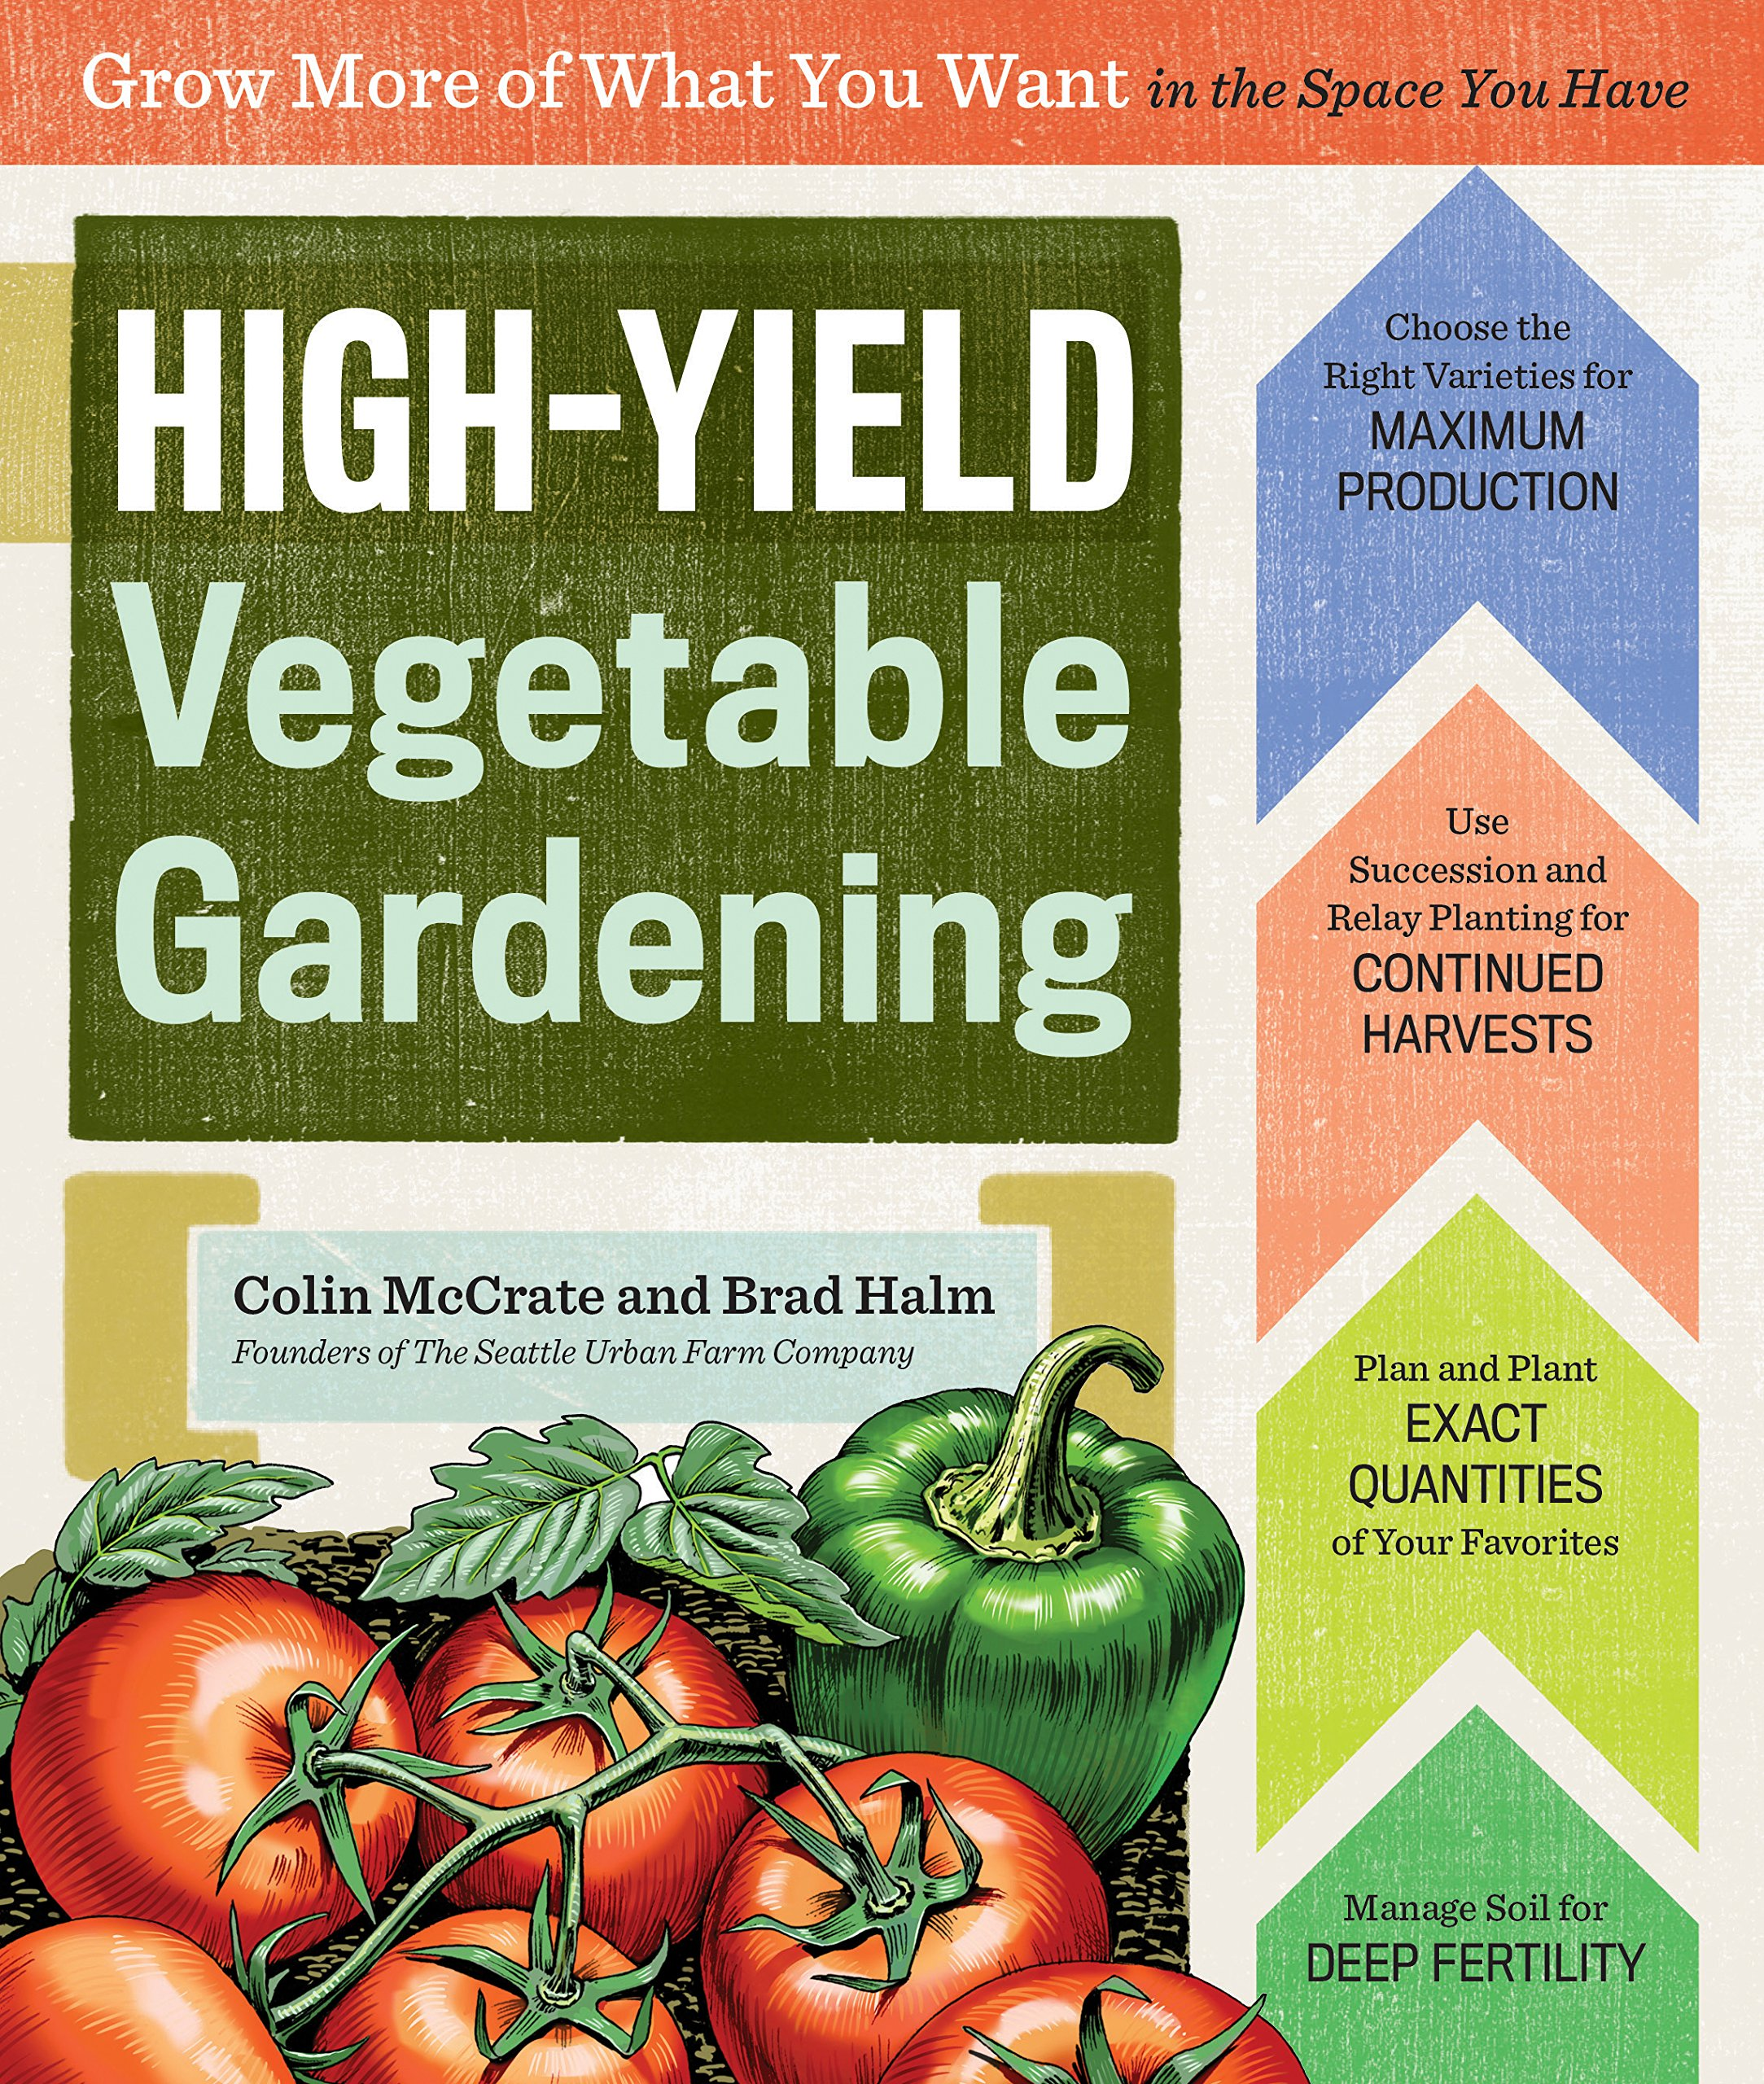 Food garden pictures - High Yield Vegetable Gardening Grow More Of What You Want In The Space You Have Colin Mccrate Brad Halm 9781612123967 Amazon Com Books